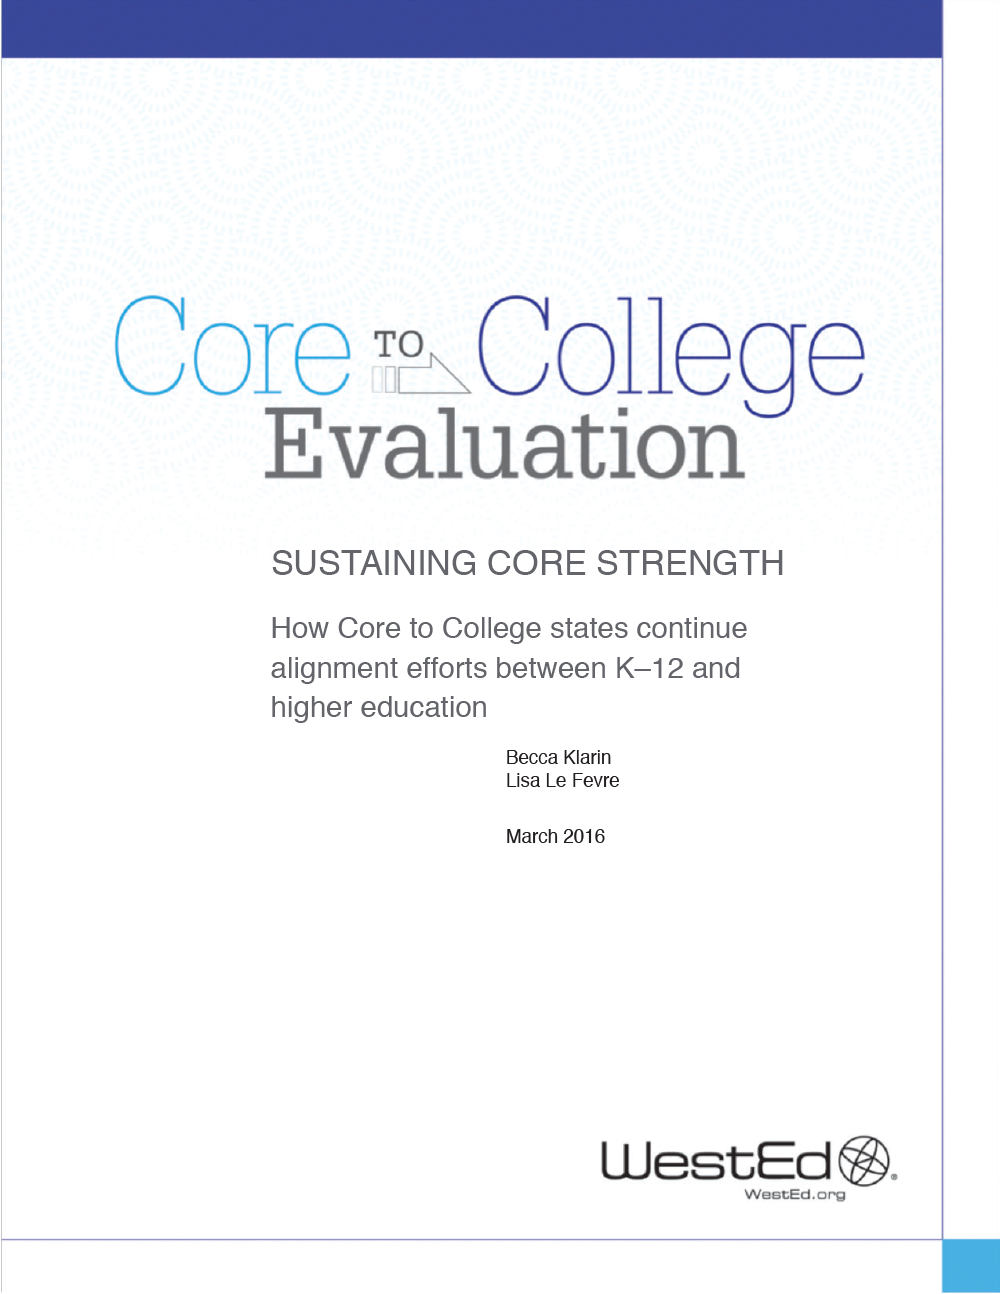 Core to College Sustaining Core Strength